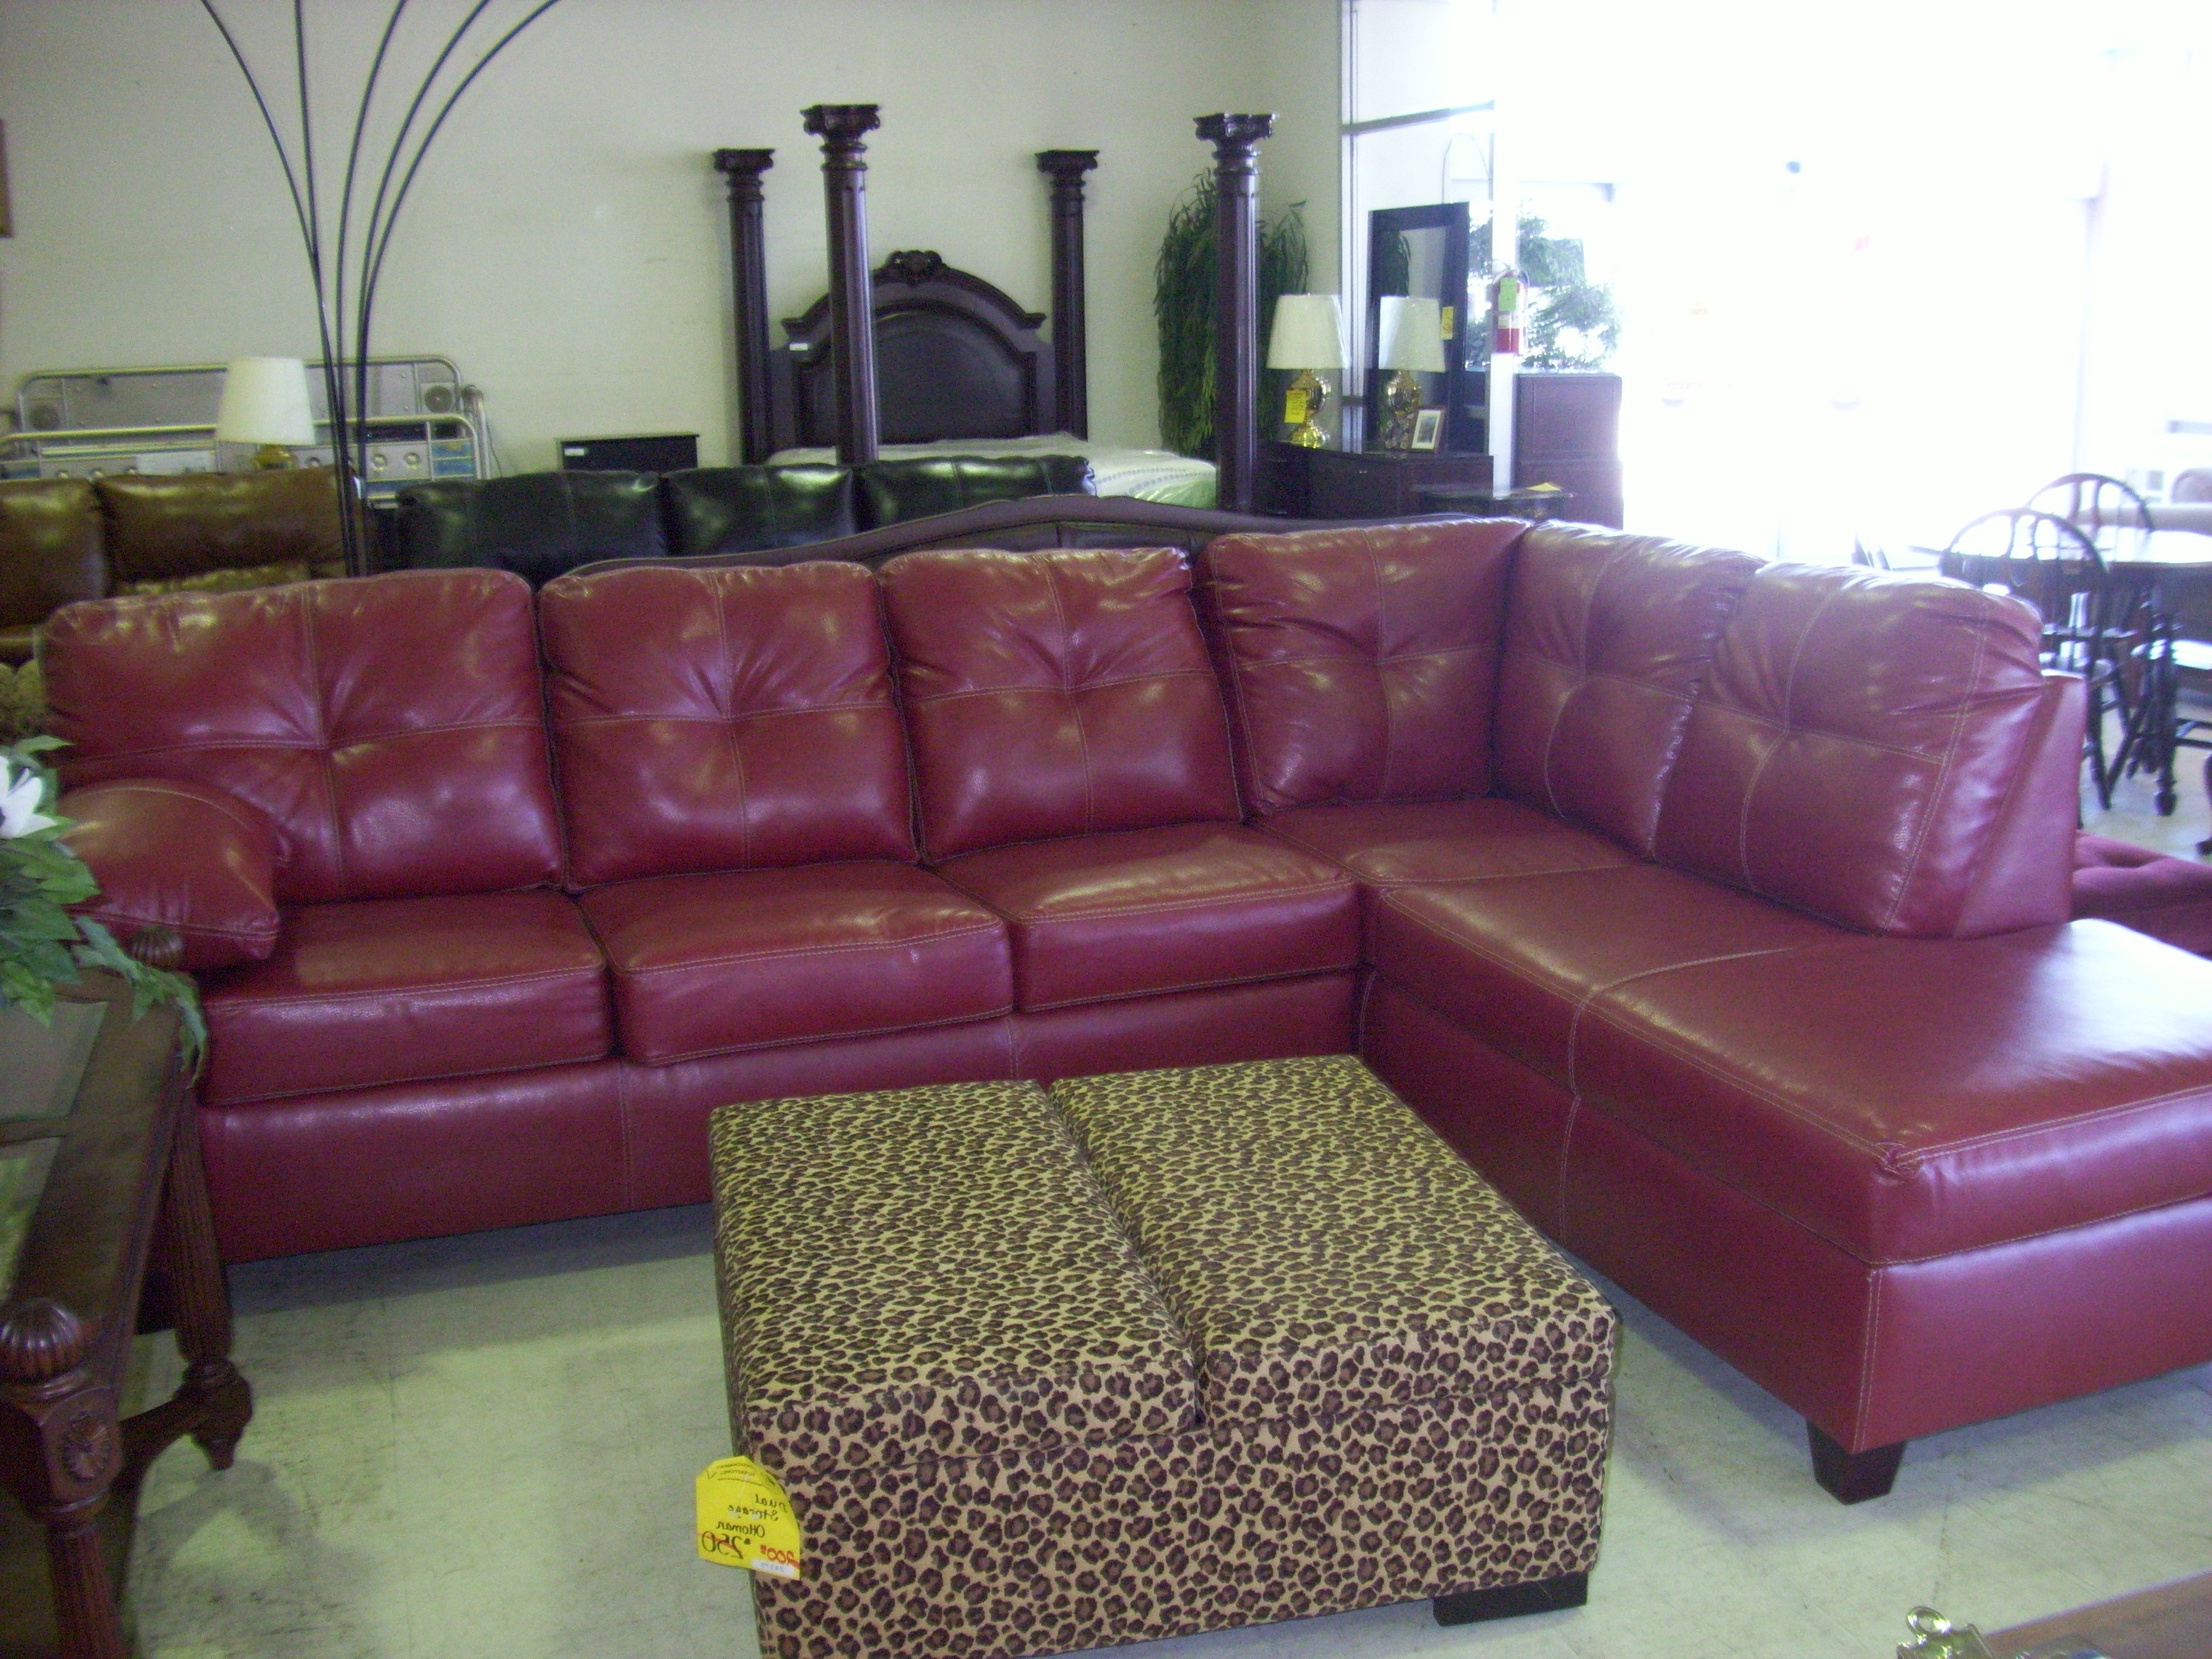 Current Living Room Decoration With Red Leather Sectional Sofa Feature L Inside Red Leather Sectional Sofas With Ottoman (View 11 of 20)